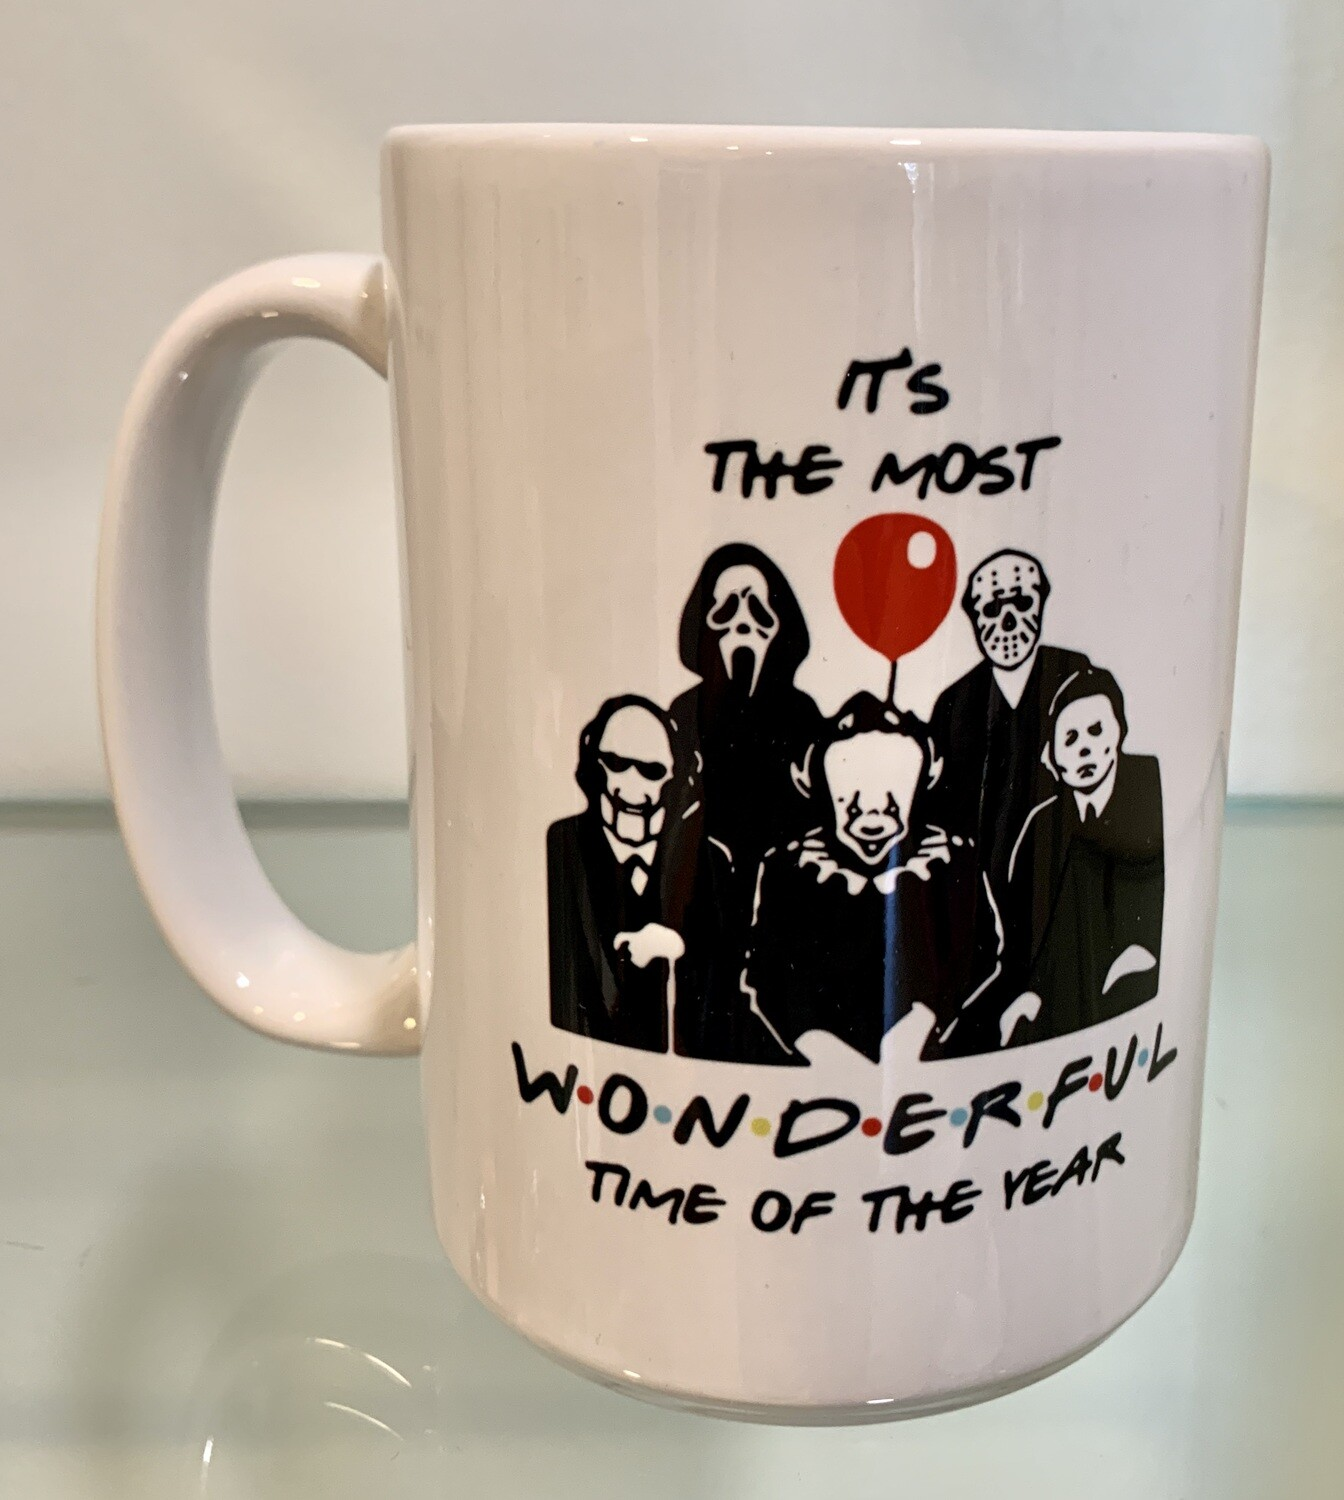 15oz Ceramic Mug - It's the most wonderful time of the year - horror design